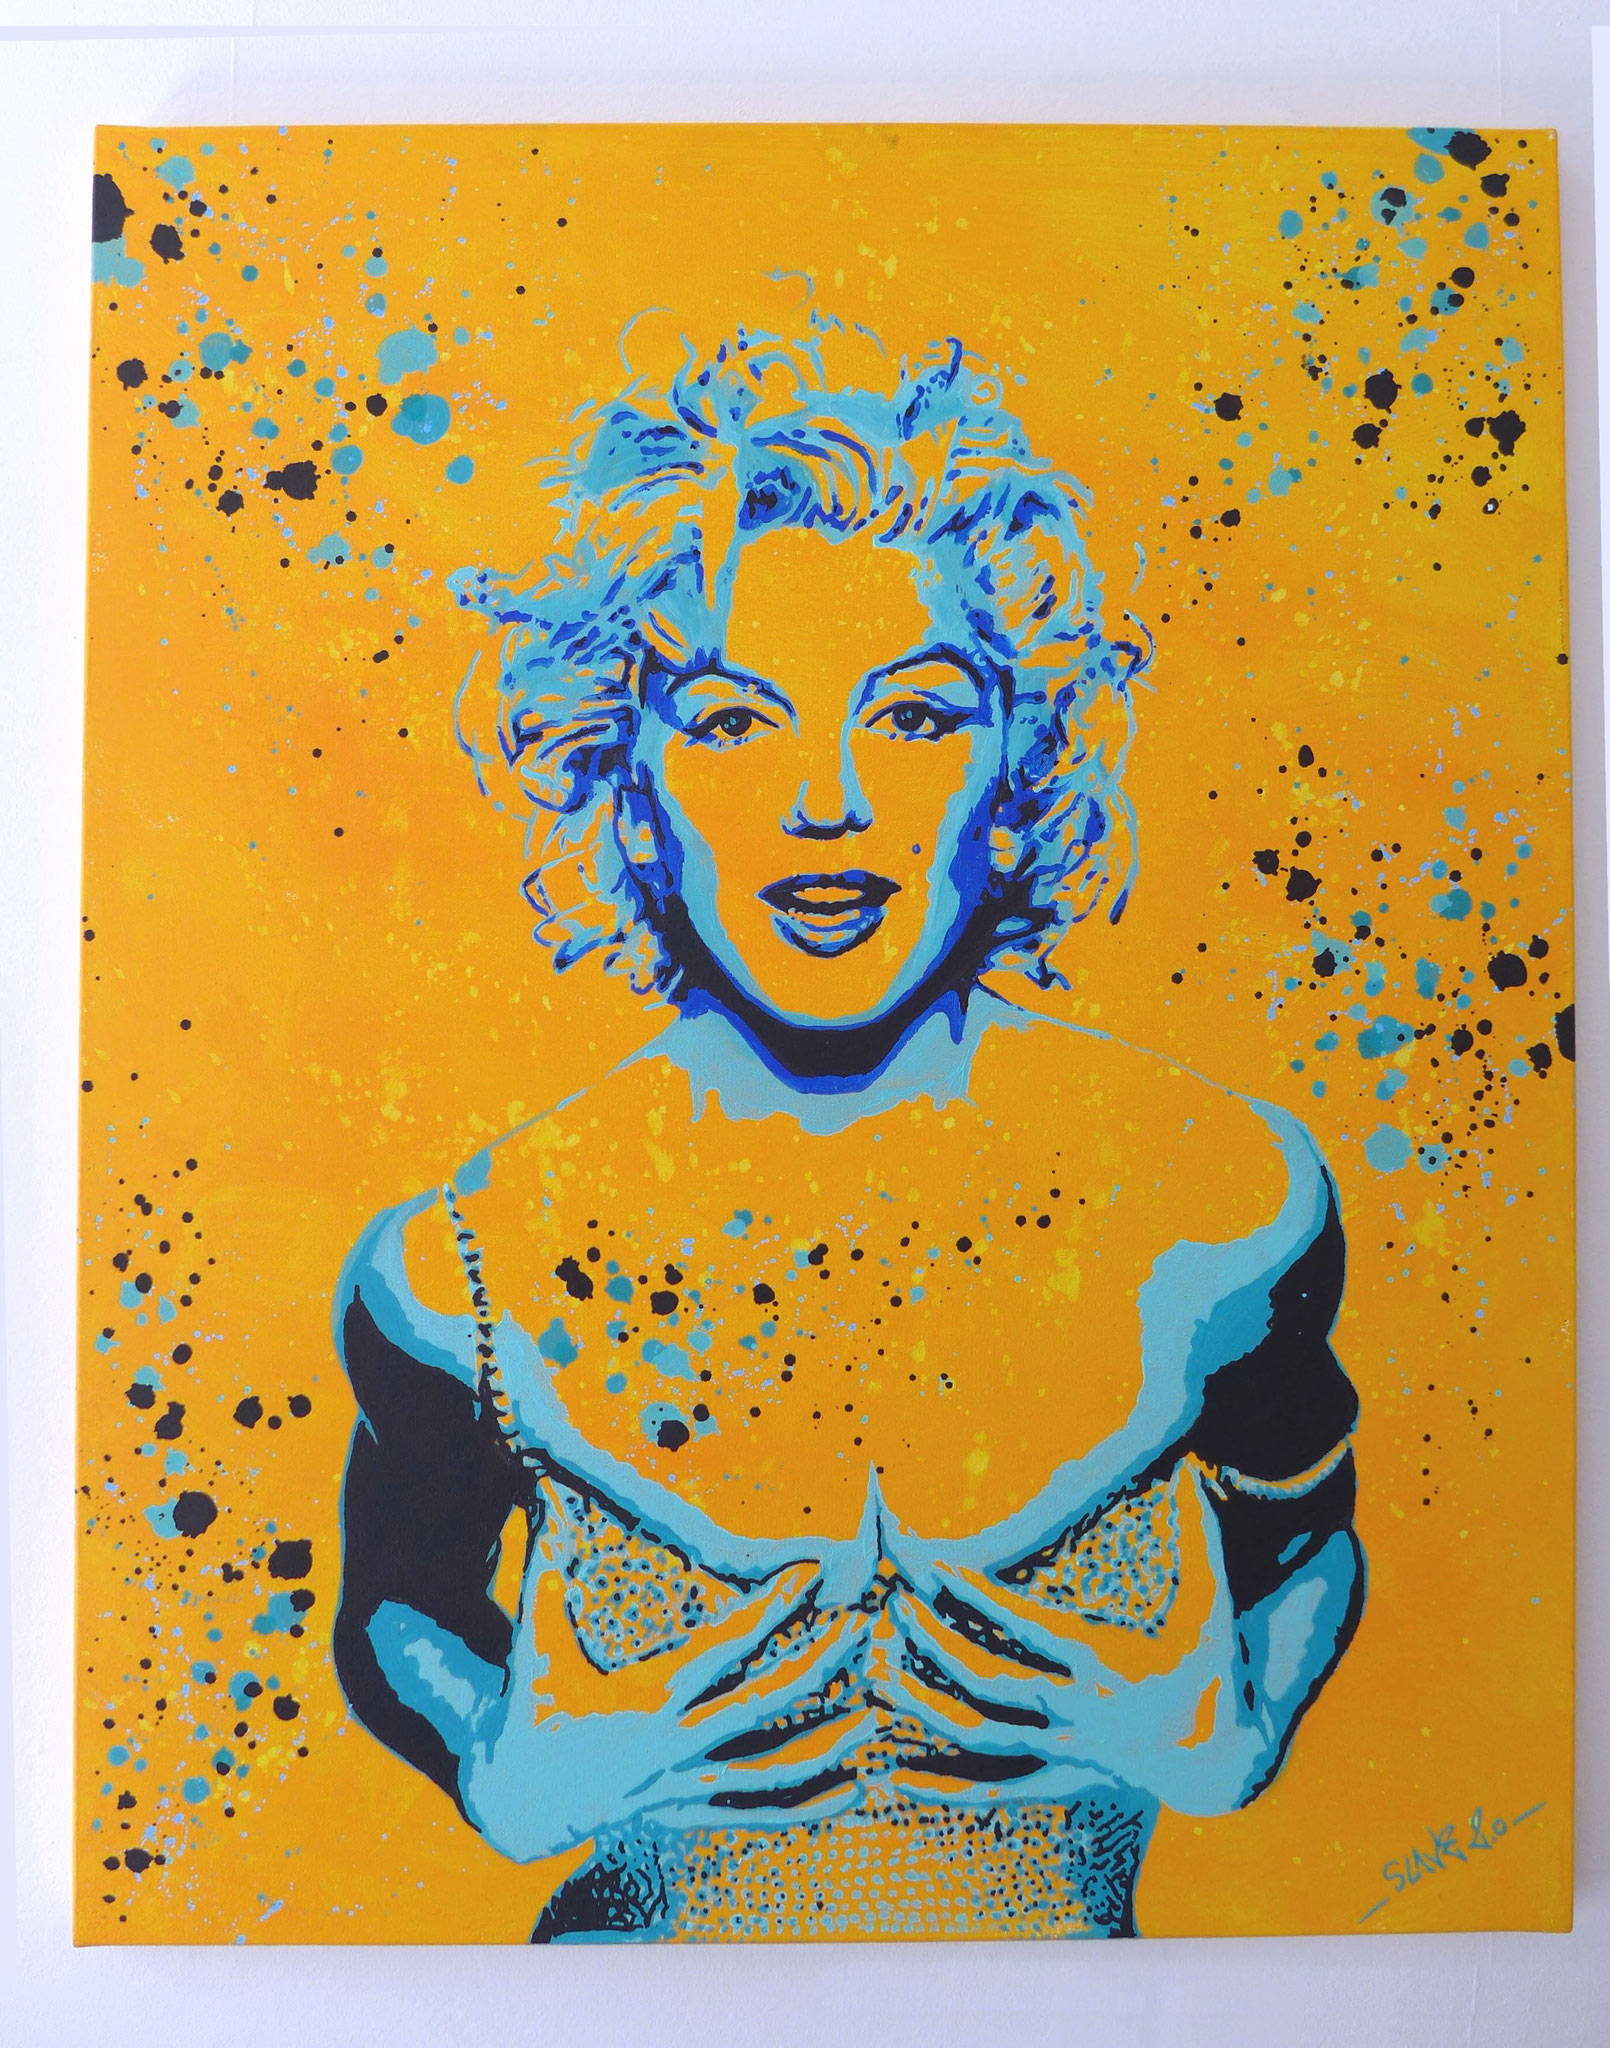 Tableau Street Art Marilyn Monroe splash - Slave 2.0